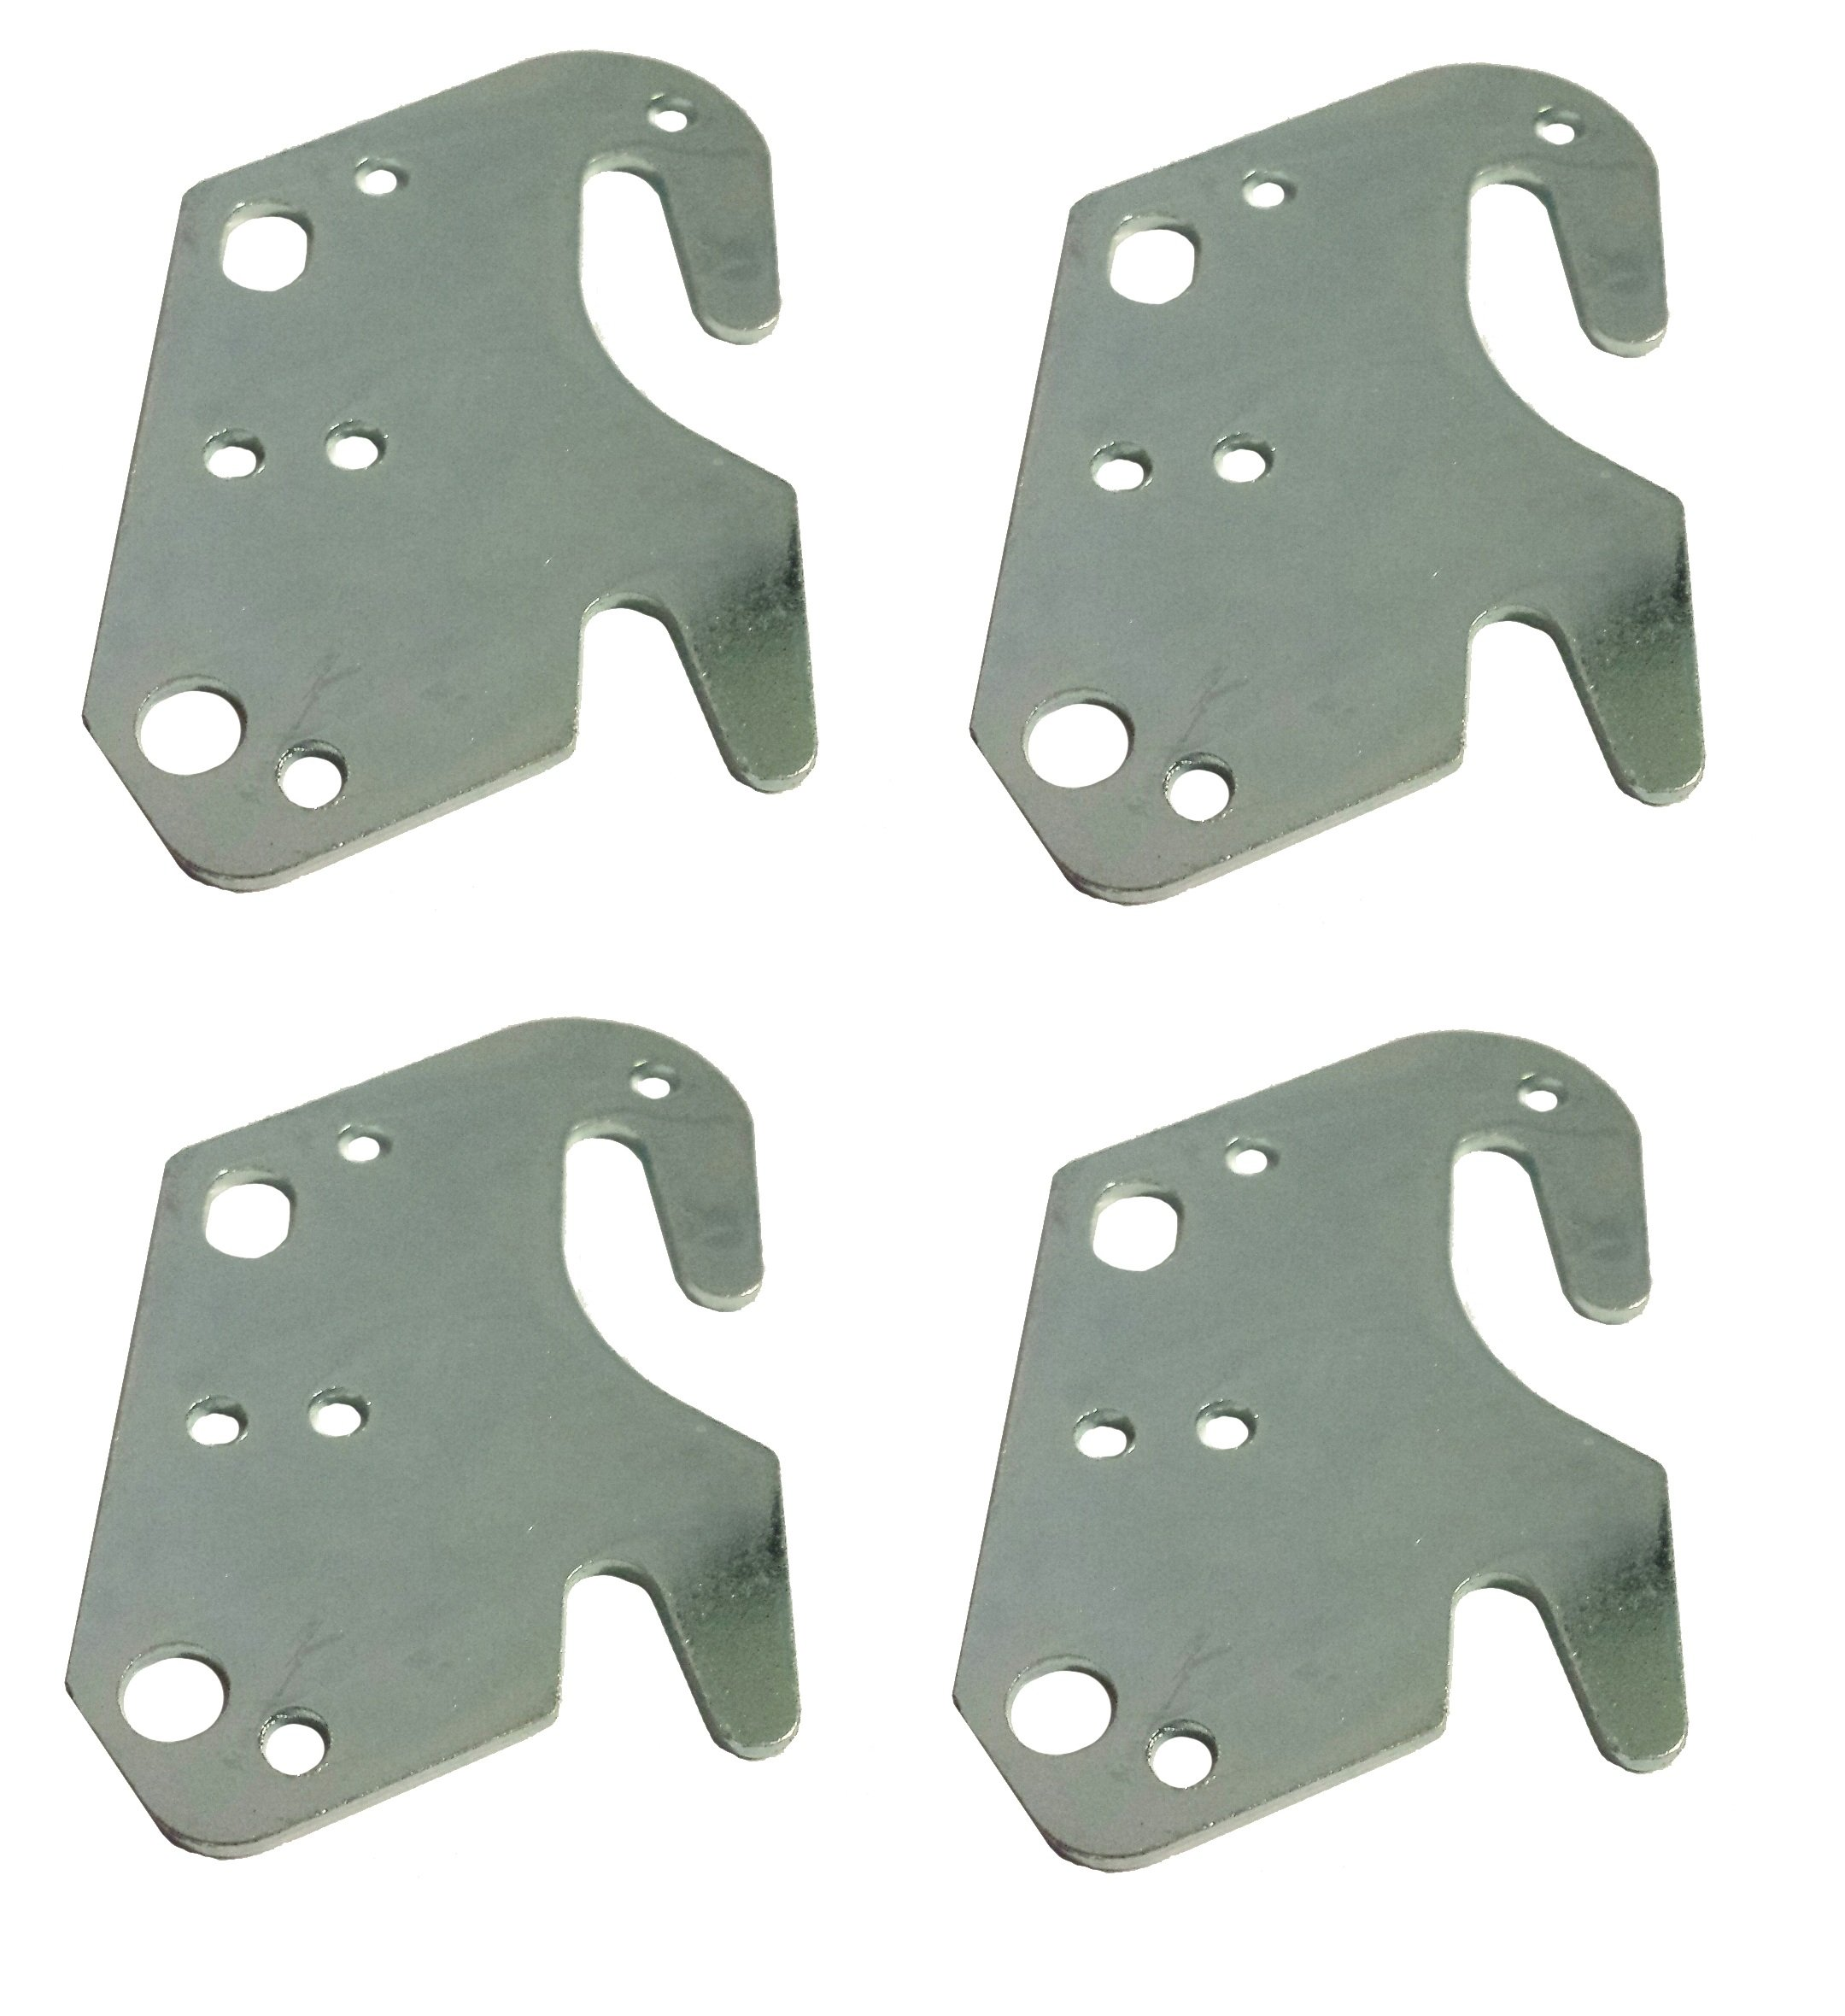 Universal Wood Bed Rail Hook Plates - Set of 4 by Elegant Upholstery